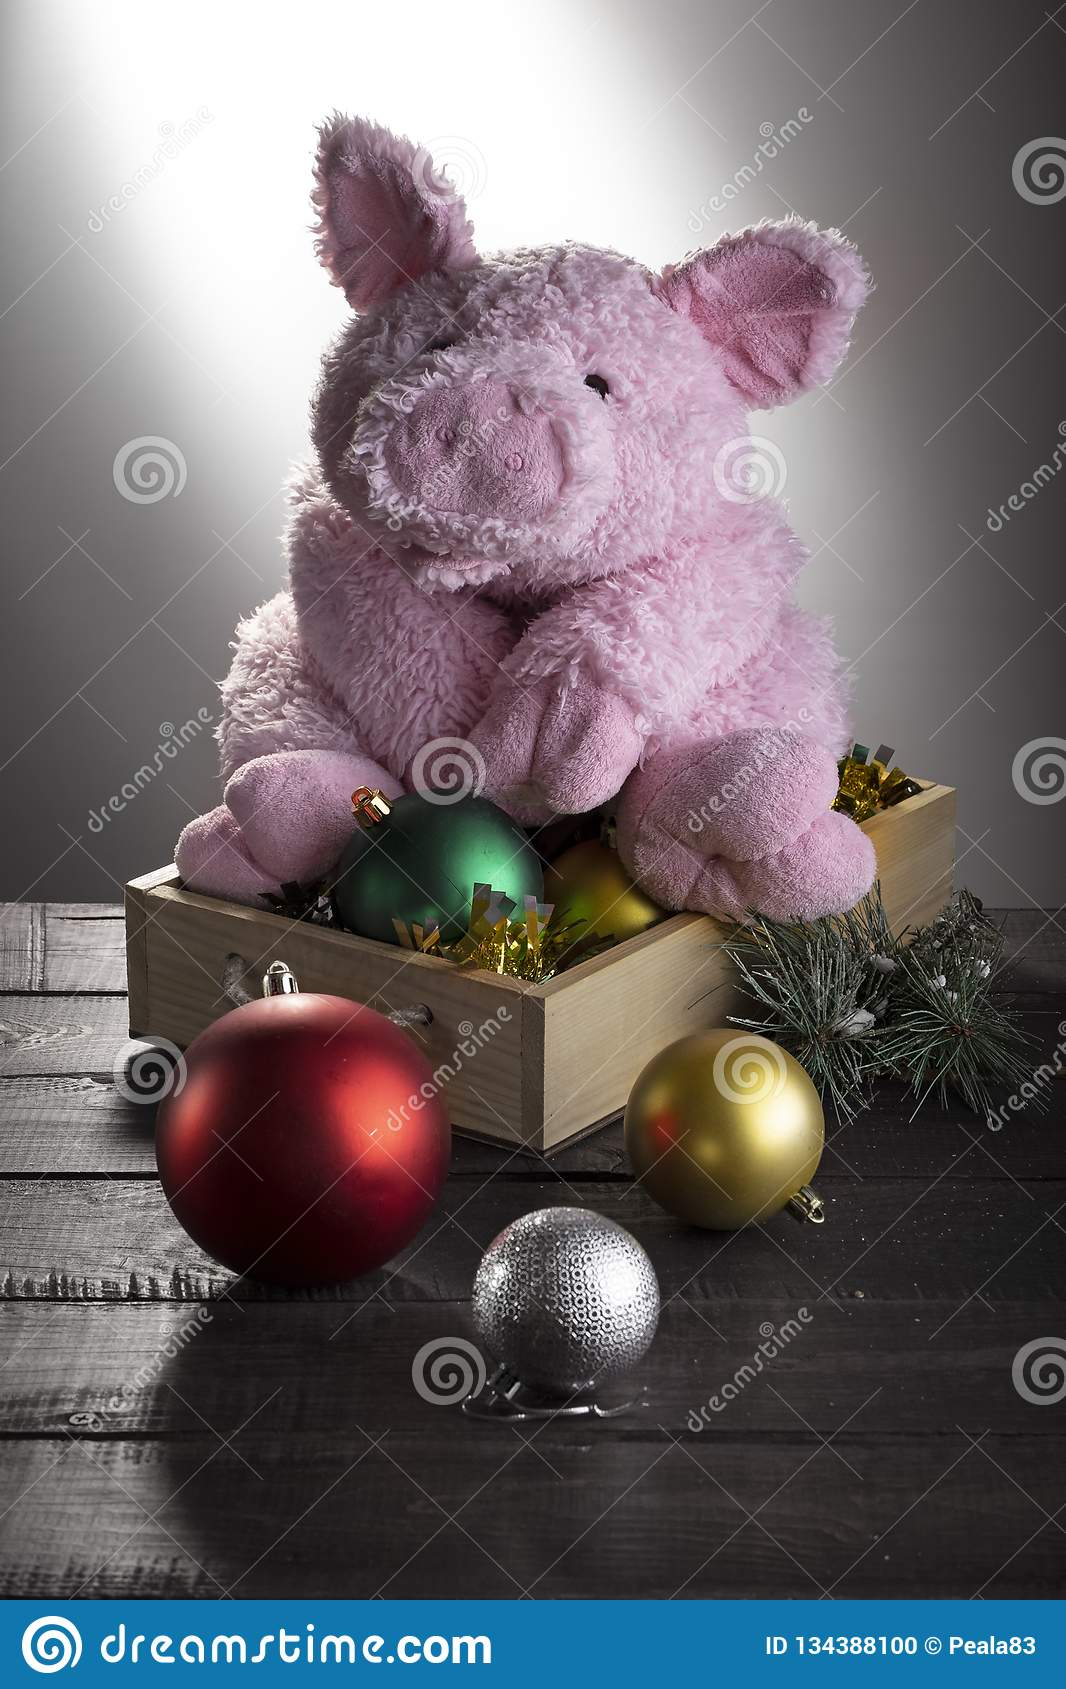 Toy pig sitting on box with New year balls on wooden surface. Festive card, Chinese New Year of Pig, Zodiac symbol 2019